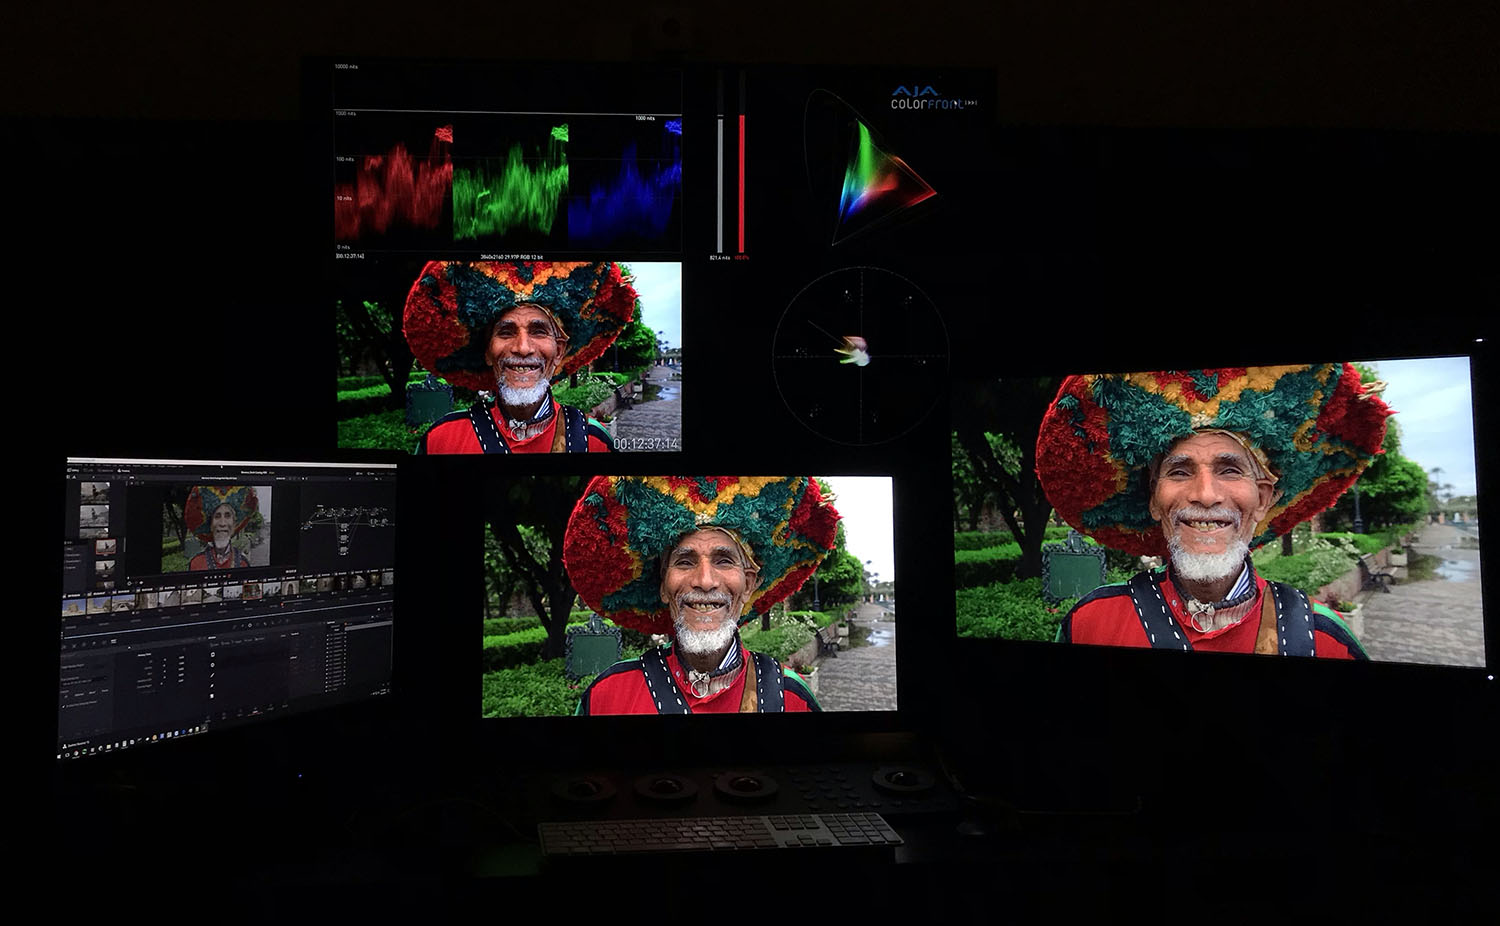 Setup showing Dolby Vision using the iCMU in 4K, with a 4Kp30 HDR image sent to both the Sony BVM-X300 and the Dolby eCMU. The resulting image is shown on the BenQ Rec 709 display.